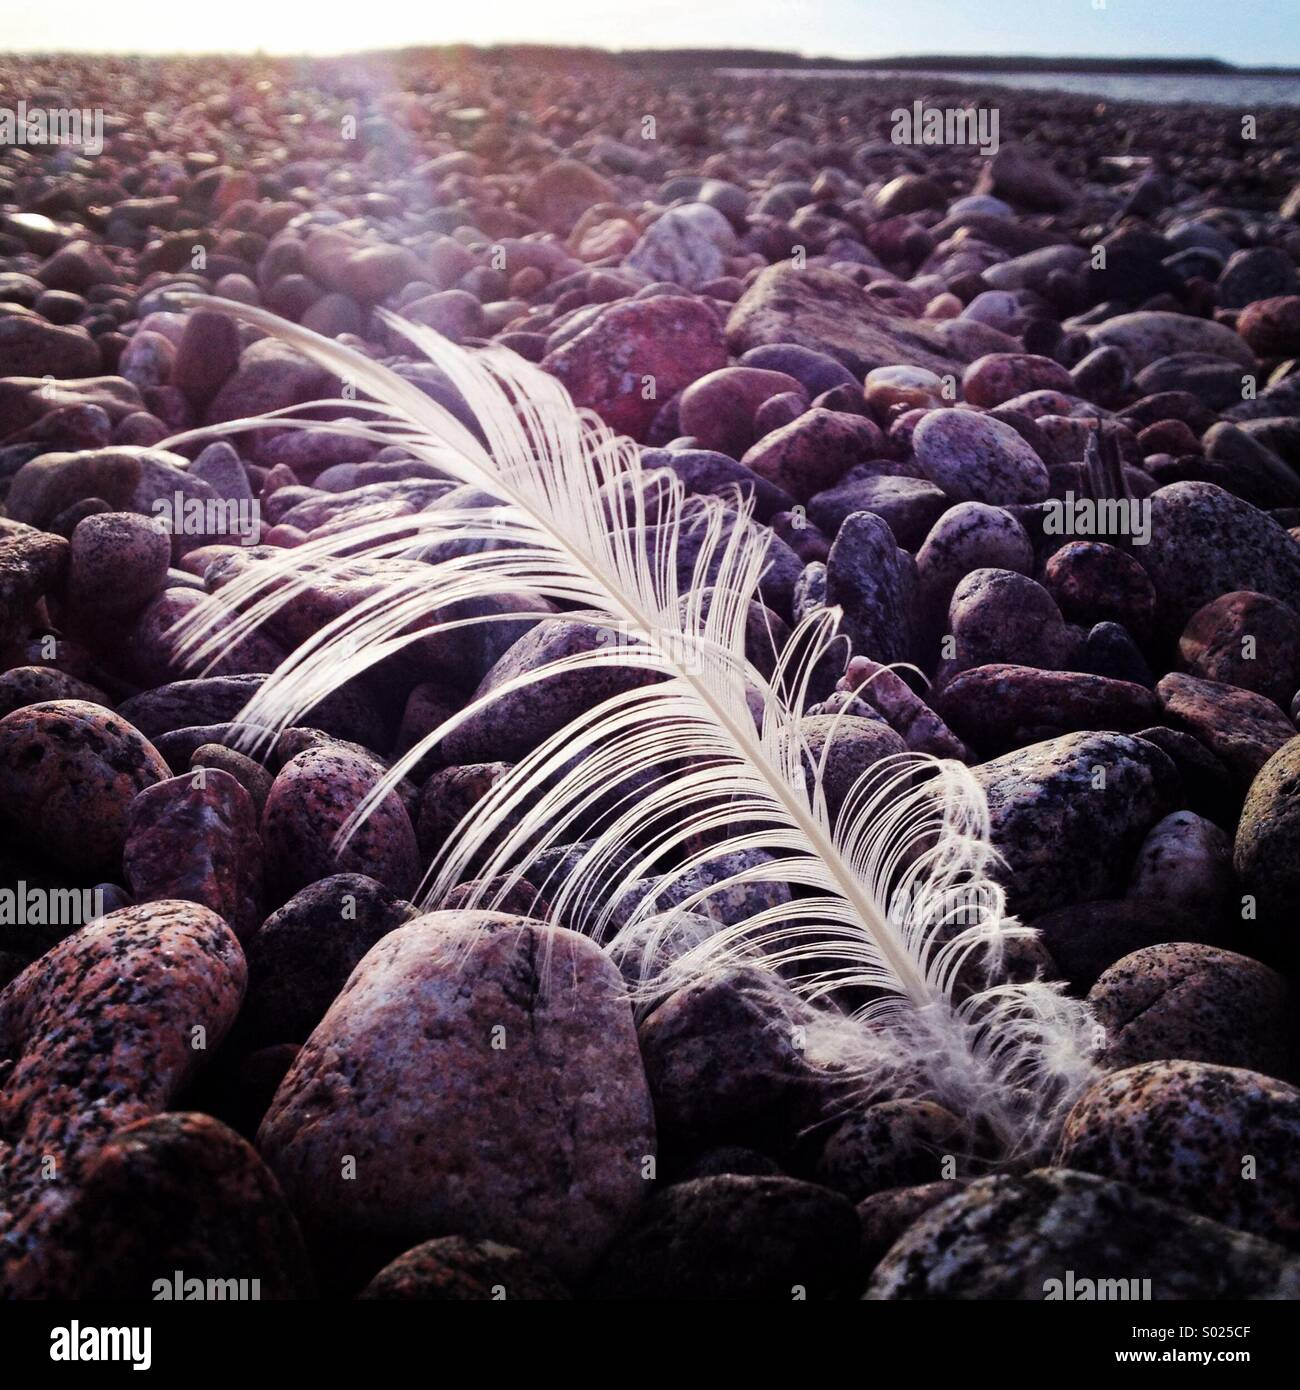 A single while feather in the wind on a Baltic pebbled beach - Stock Image